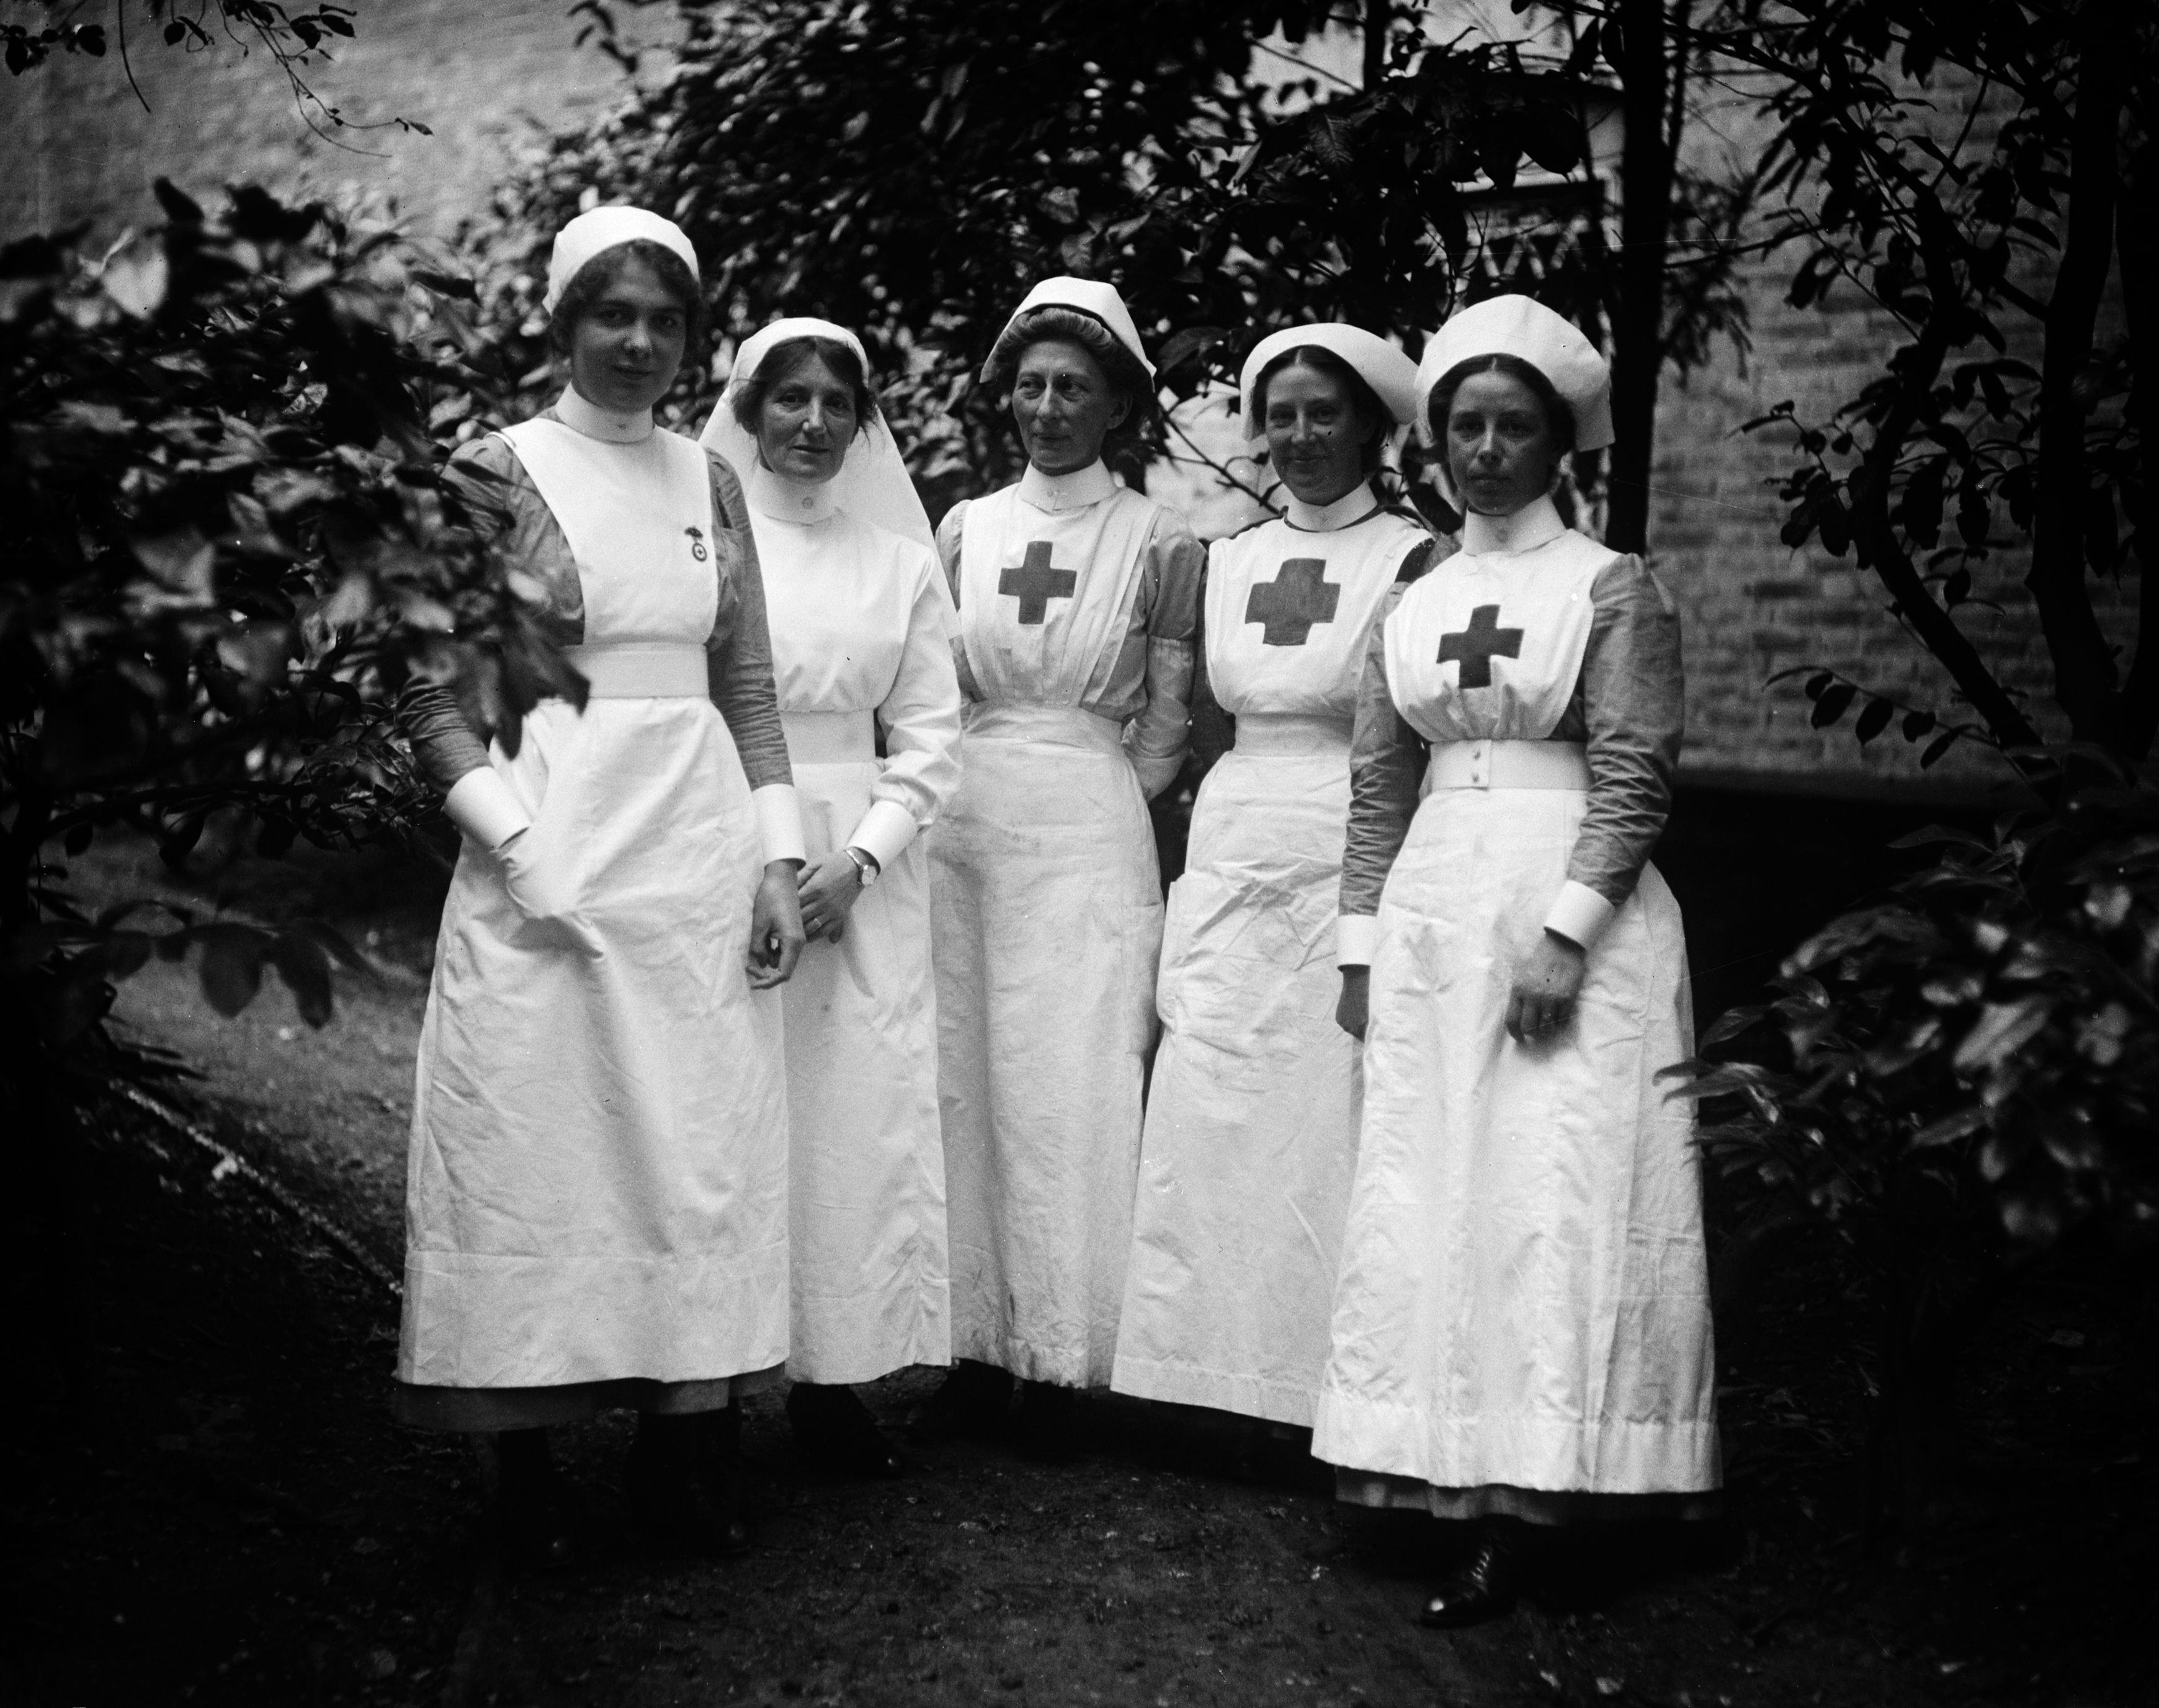 An image of nurses during WW1. Nurses could work anywhere from the homefront to the front lines under heavy fire. They risked their lives and exposed themselves to a variety of diseases and dangerous situations to help injured or sick soldiers.